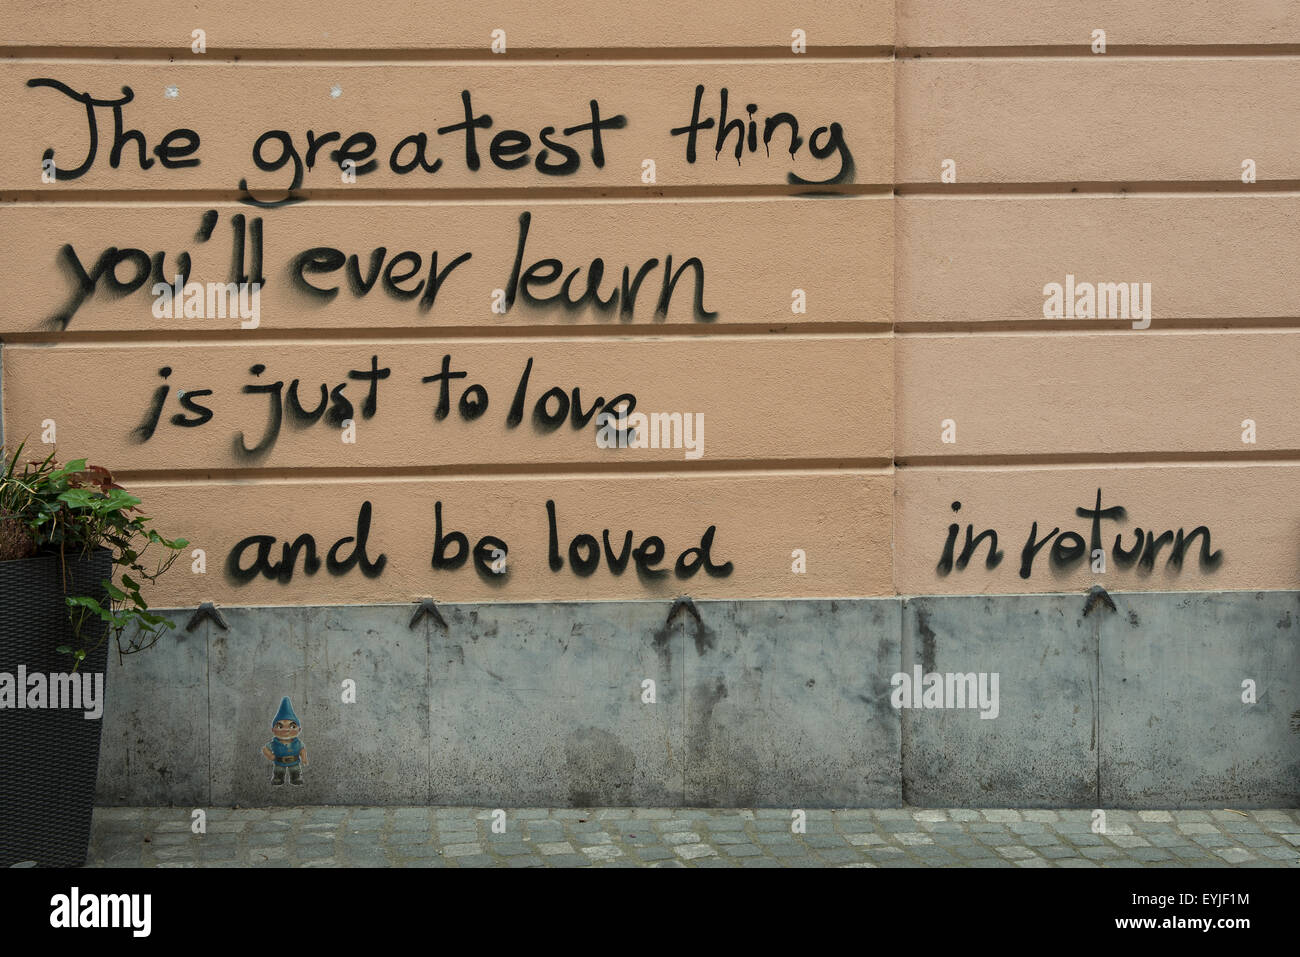 love written on the wall of the city - Stock Image